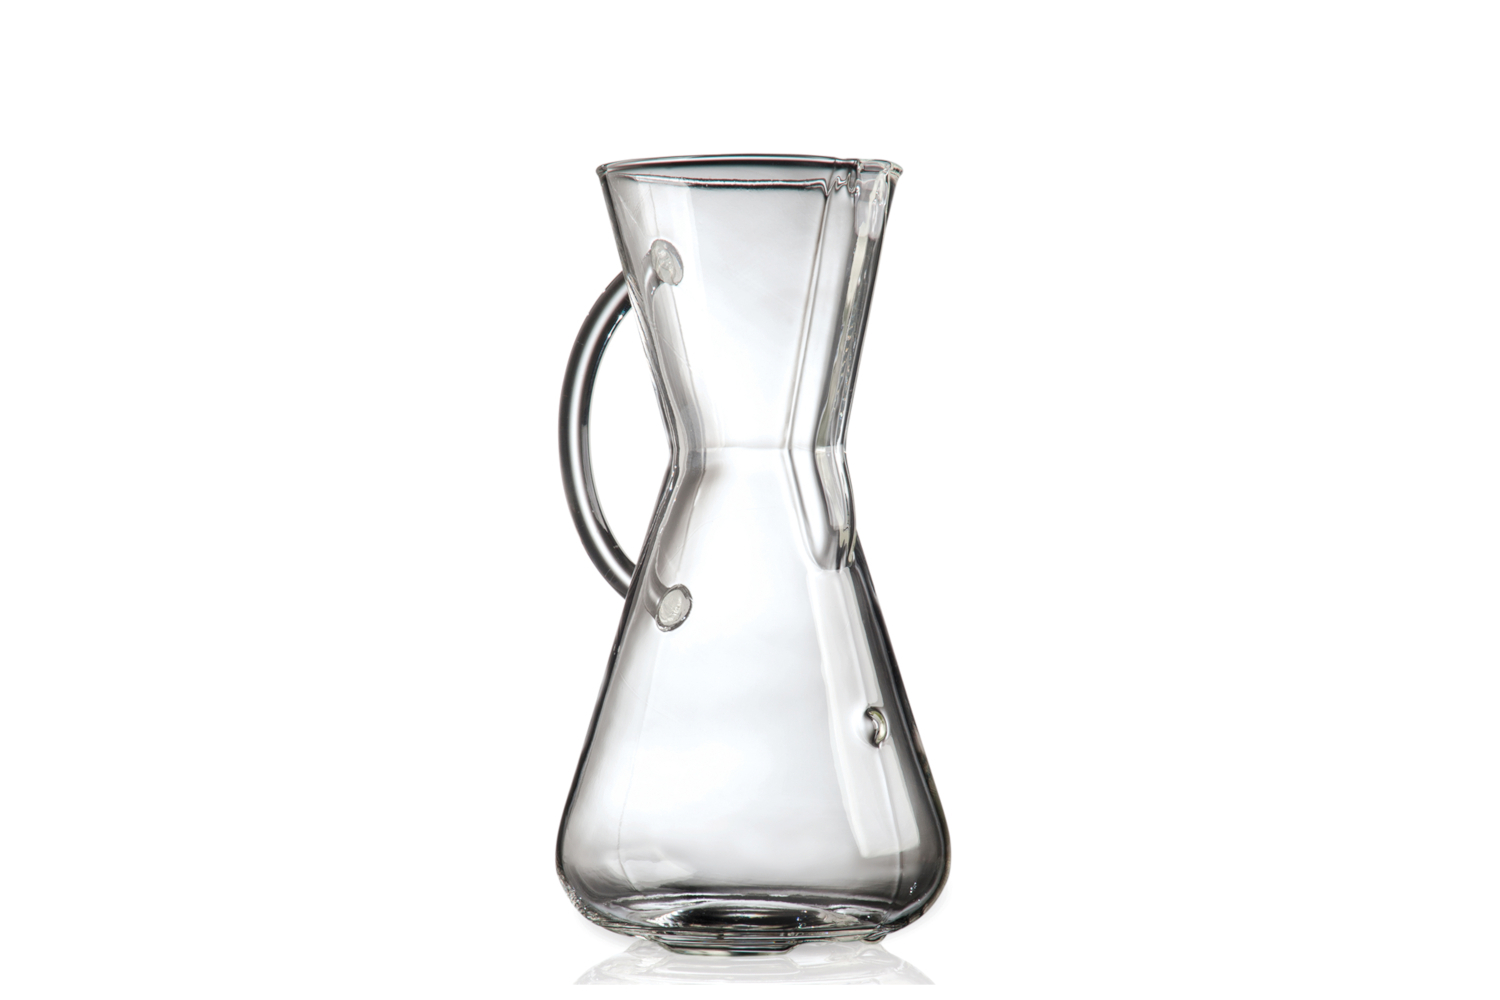 Chemex Glass Handle Coffee Makers - 3 Cup